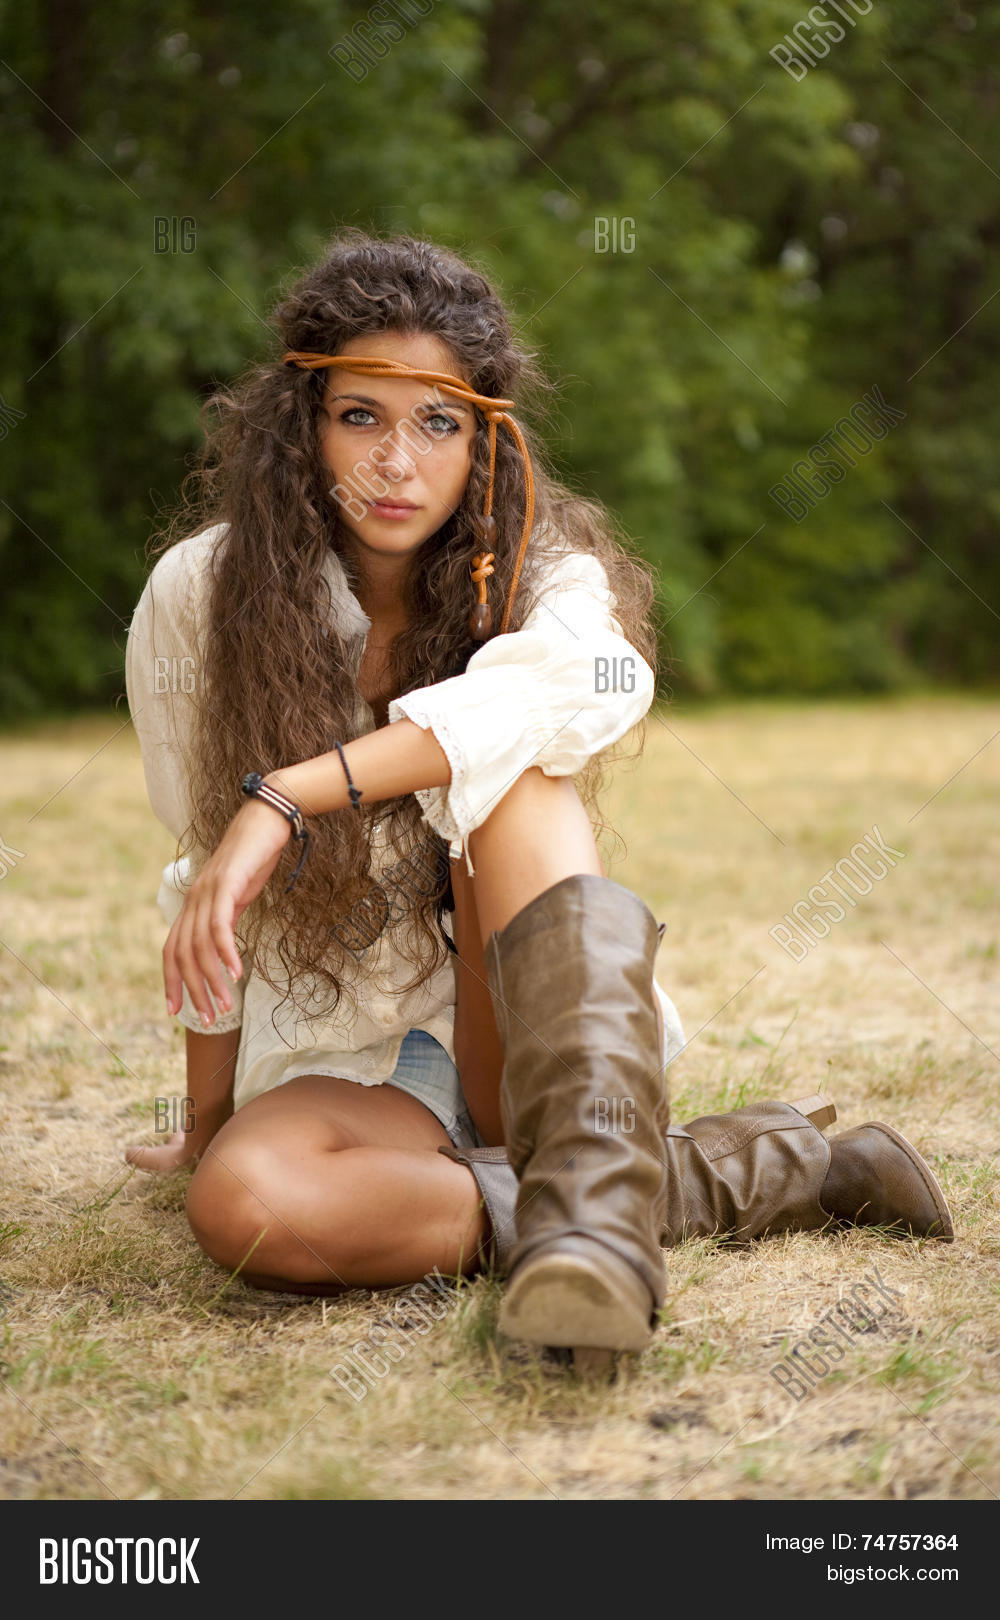 multiple colors great prices new products Beautiful Hippie Girl Image & Photo (Free Trial)   Bigstock